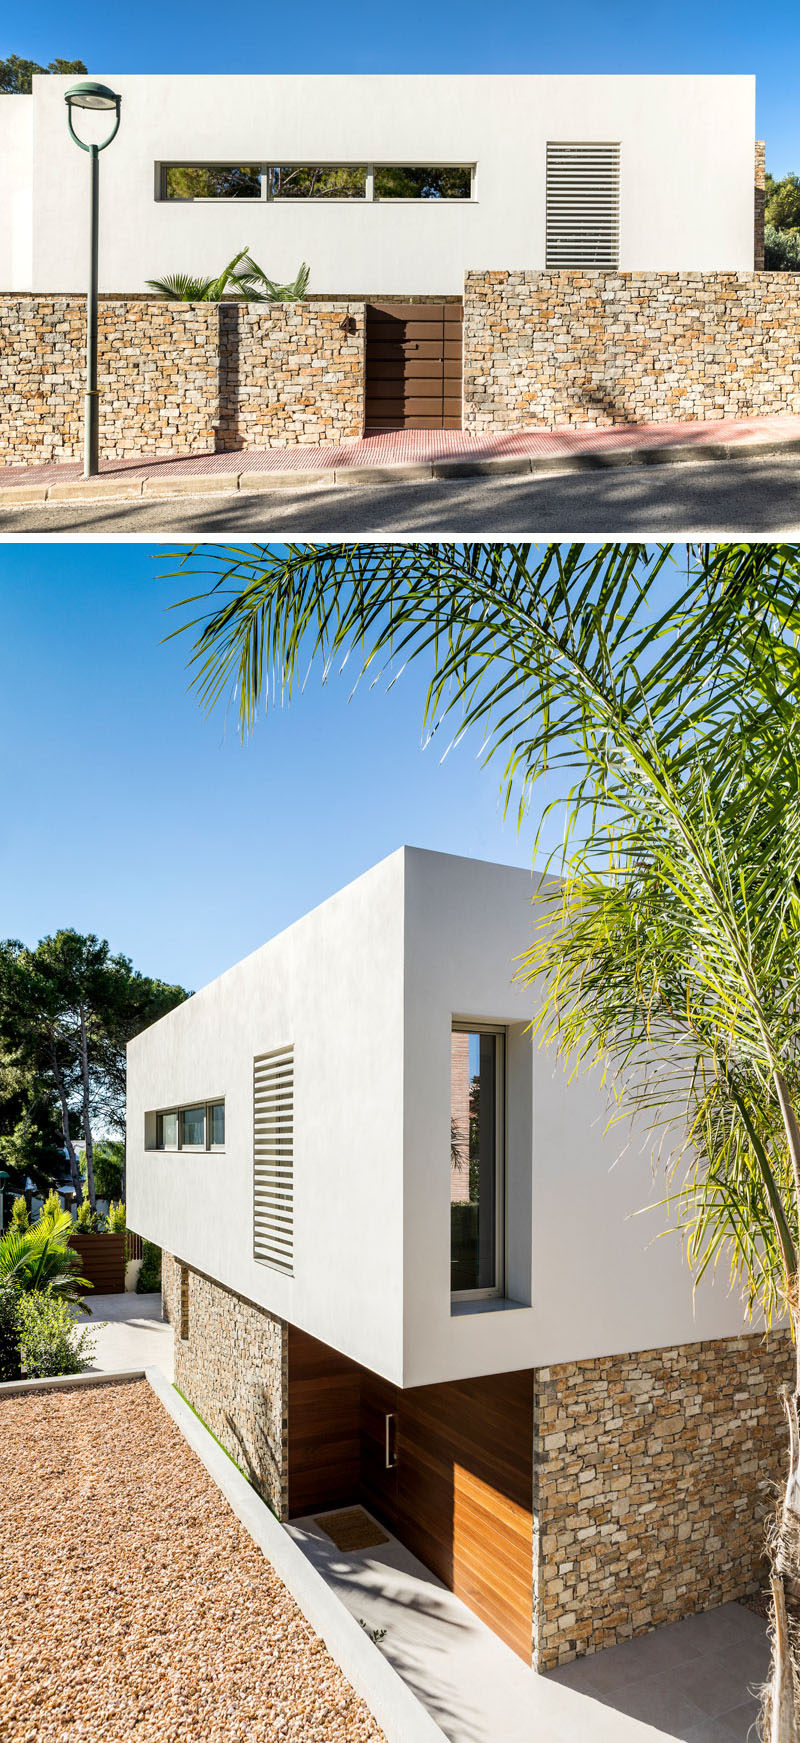 Pablo Serrano Elorduy of Dom Arquitectura, has recently completed the design of a new and modern house inTarragona, a city in Spain. #ModernHouse #HouseDesign #ModernArchitecture